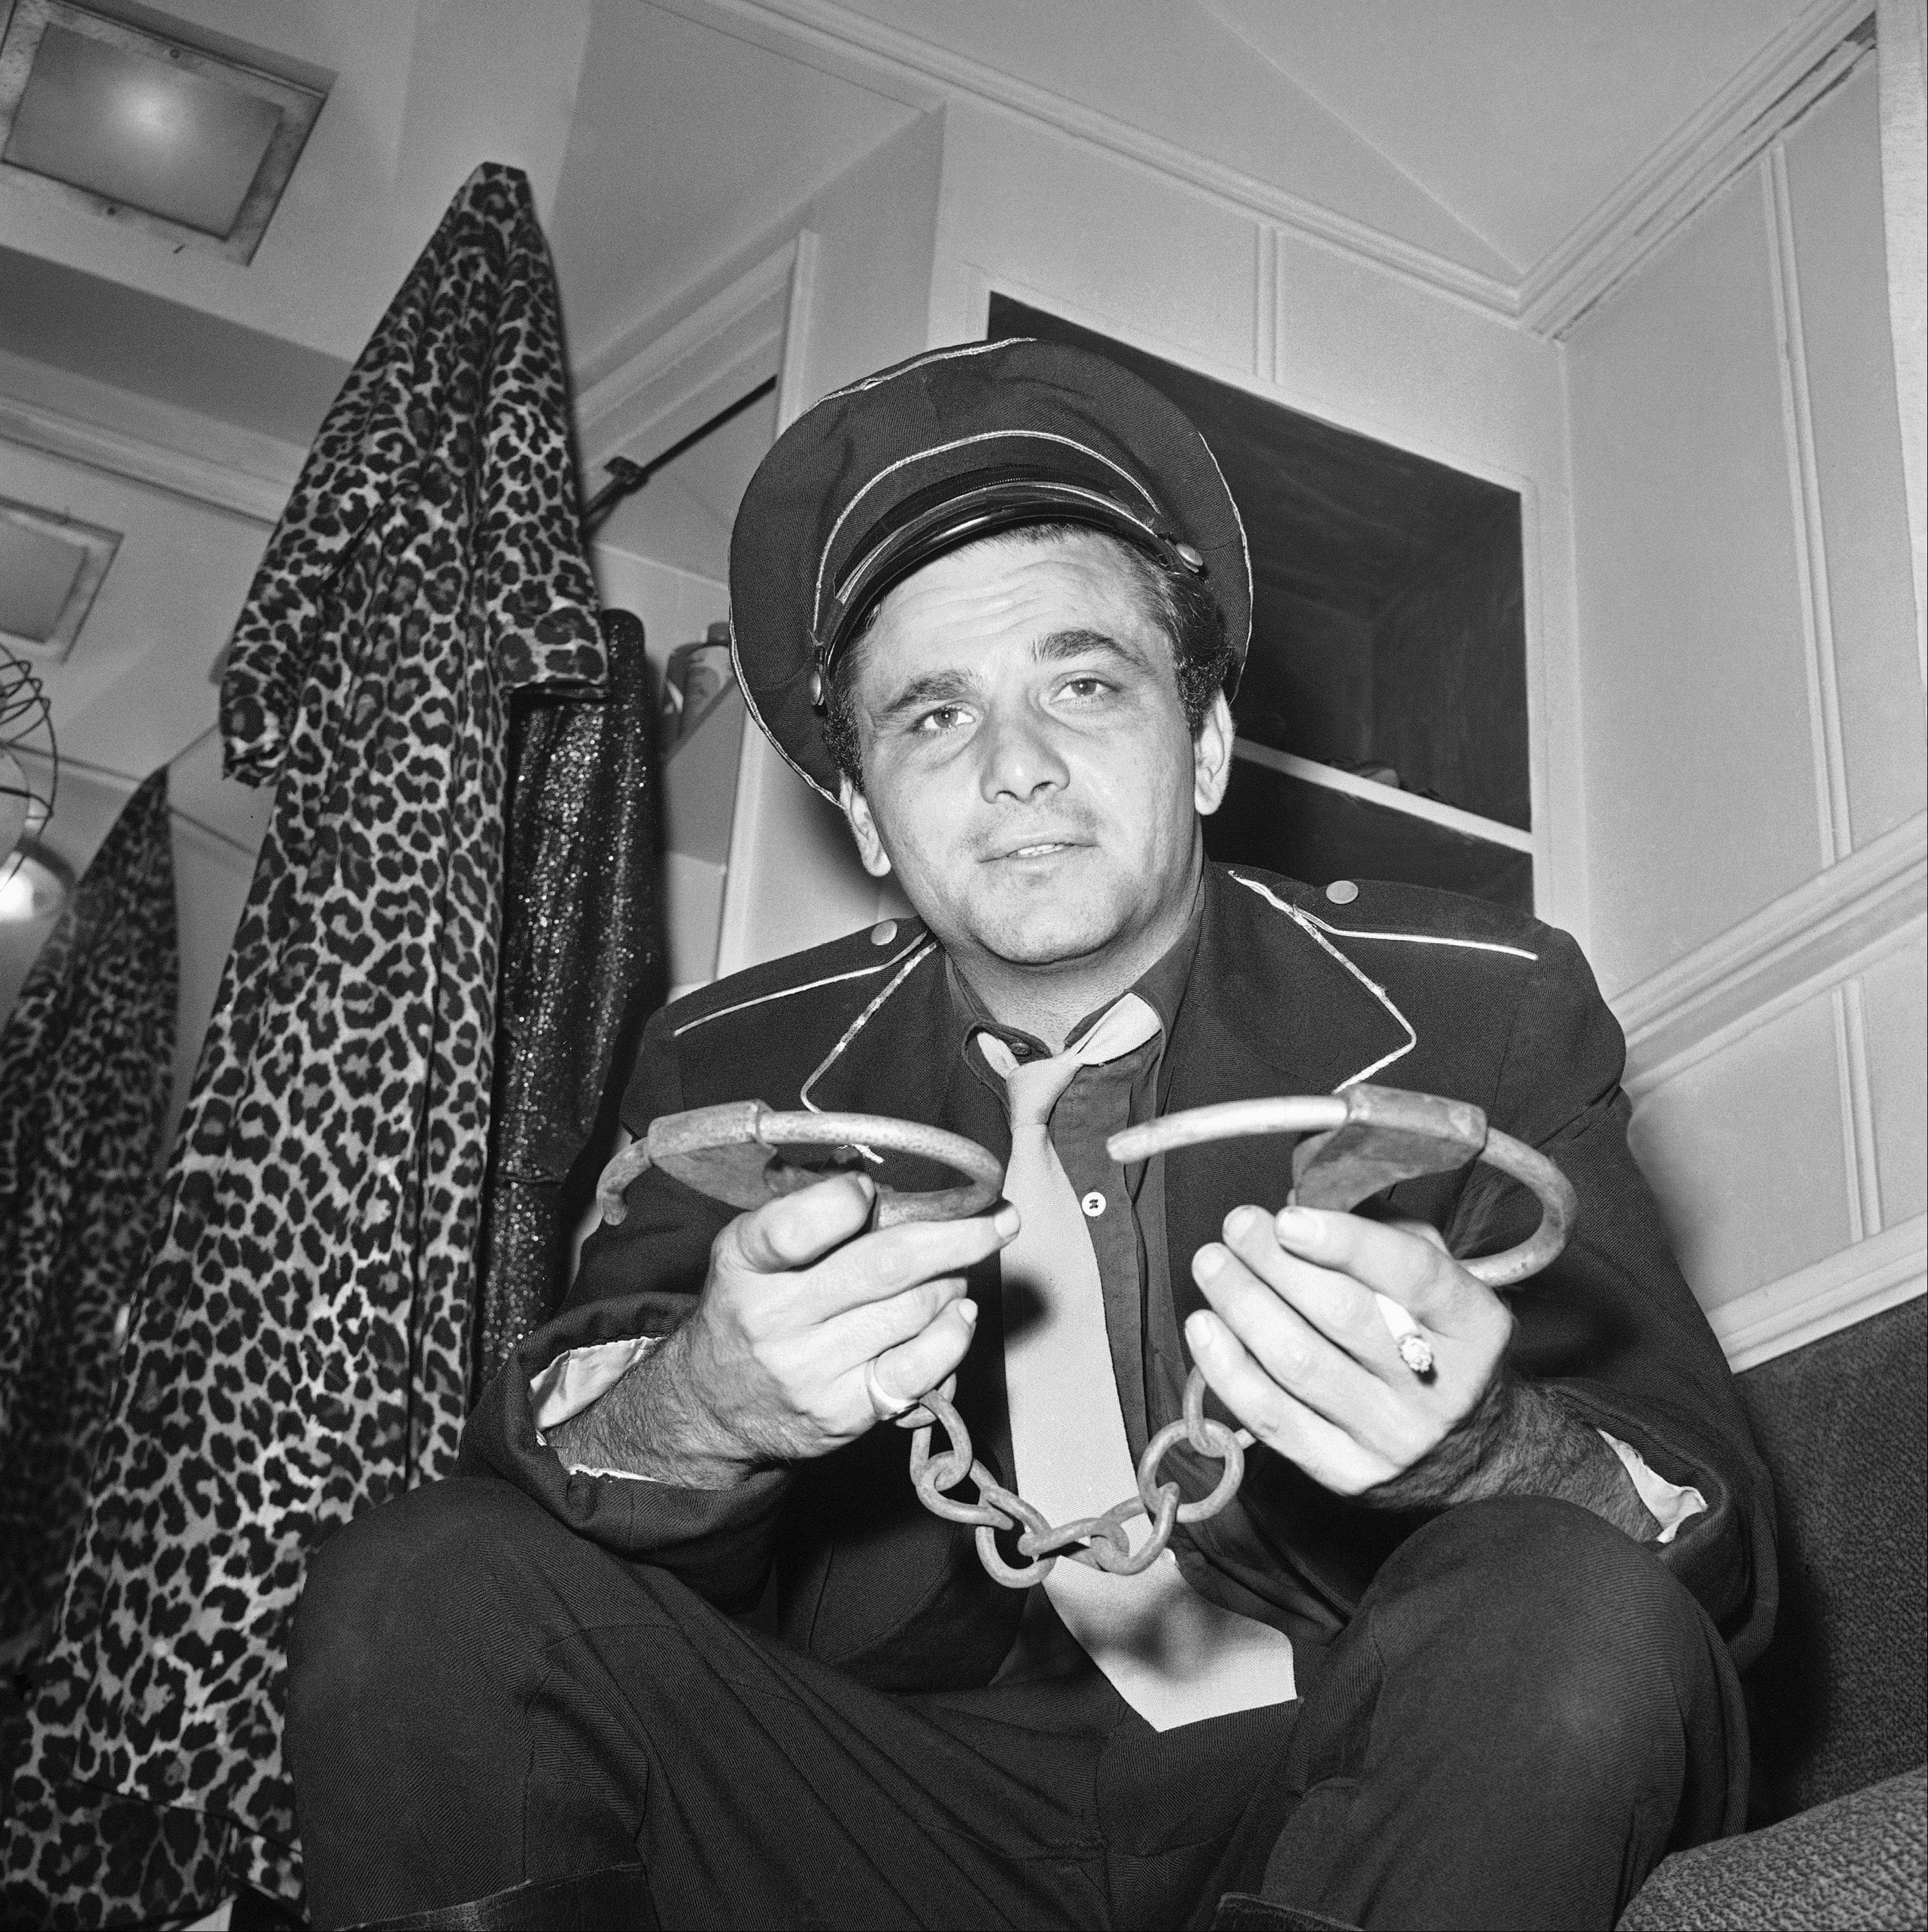 "Peter Falk shown December 1962, who stars with Shelley Winters in the film ""The Balcony"" a film in which Winters plays the role of a madam of a brothel and Falk, a chief of police. This type of film known in the industry as a ""Art Film."" Pictures of Peter Falk during acting scene and press interview in which he holds pair of old fashioned handcuffs, he uses in a scene.."